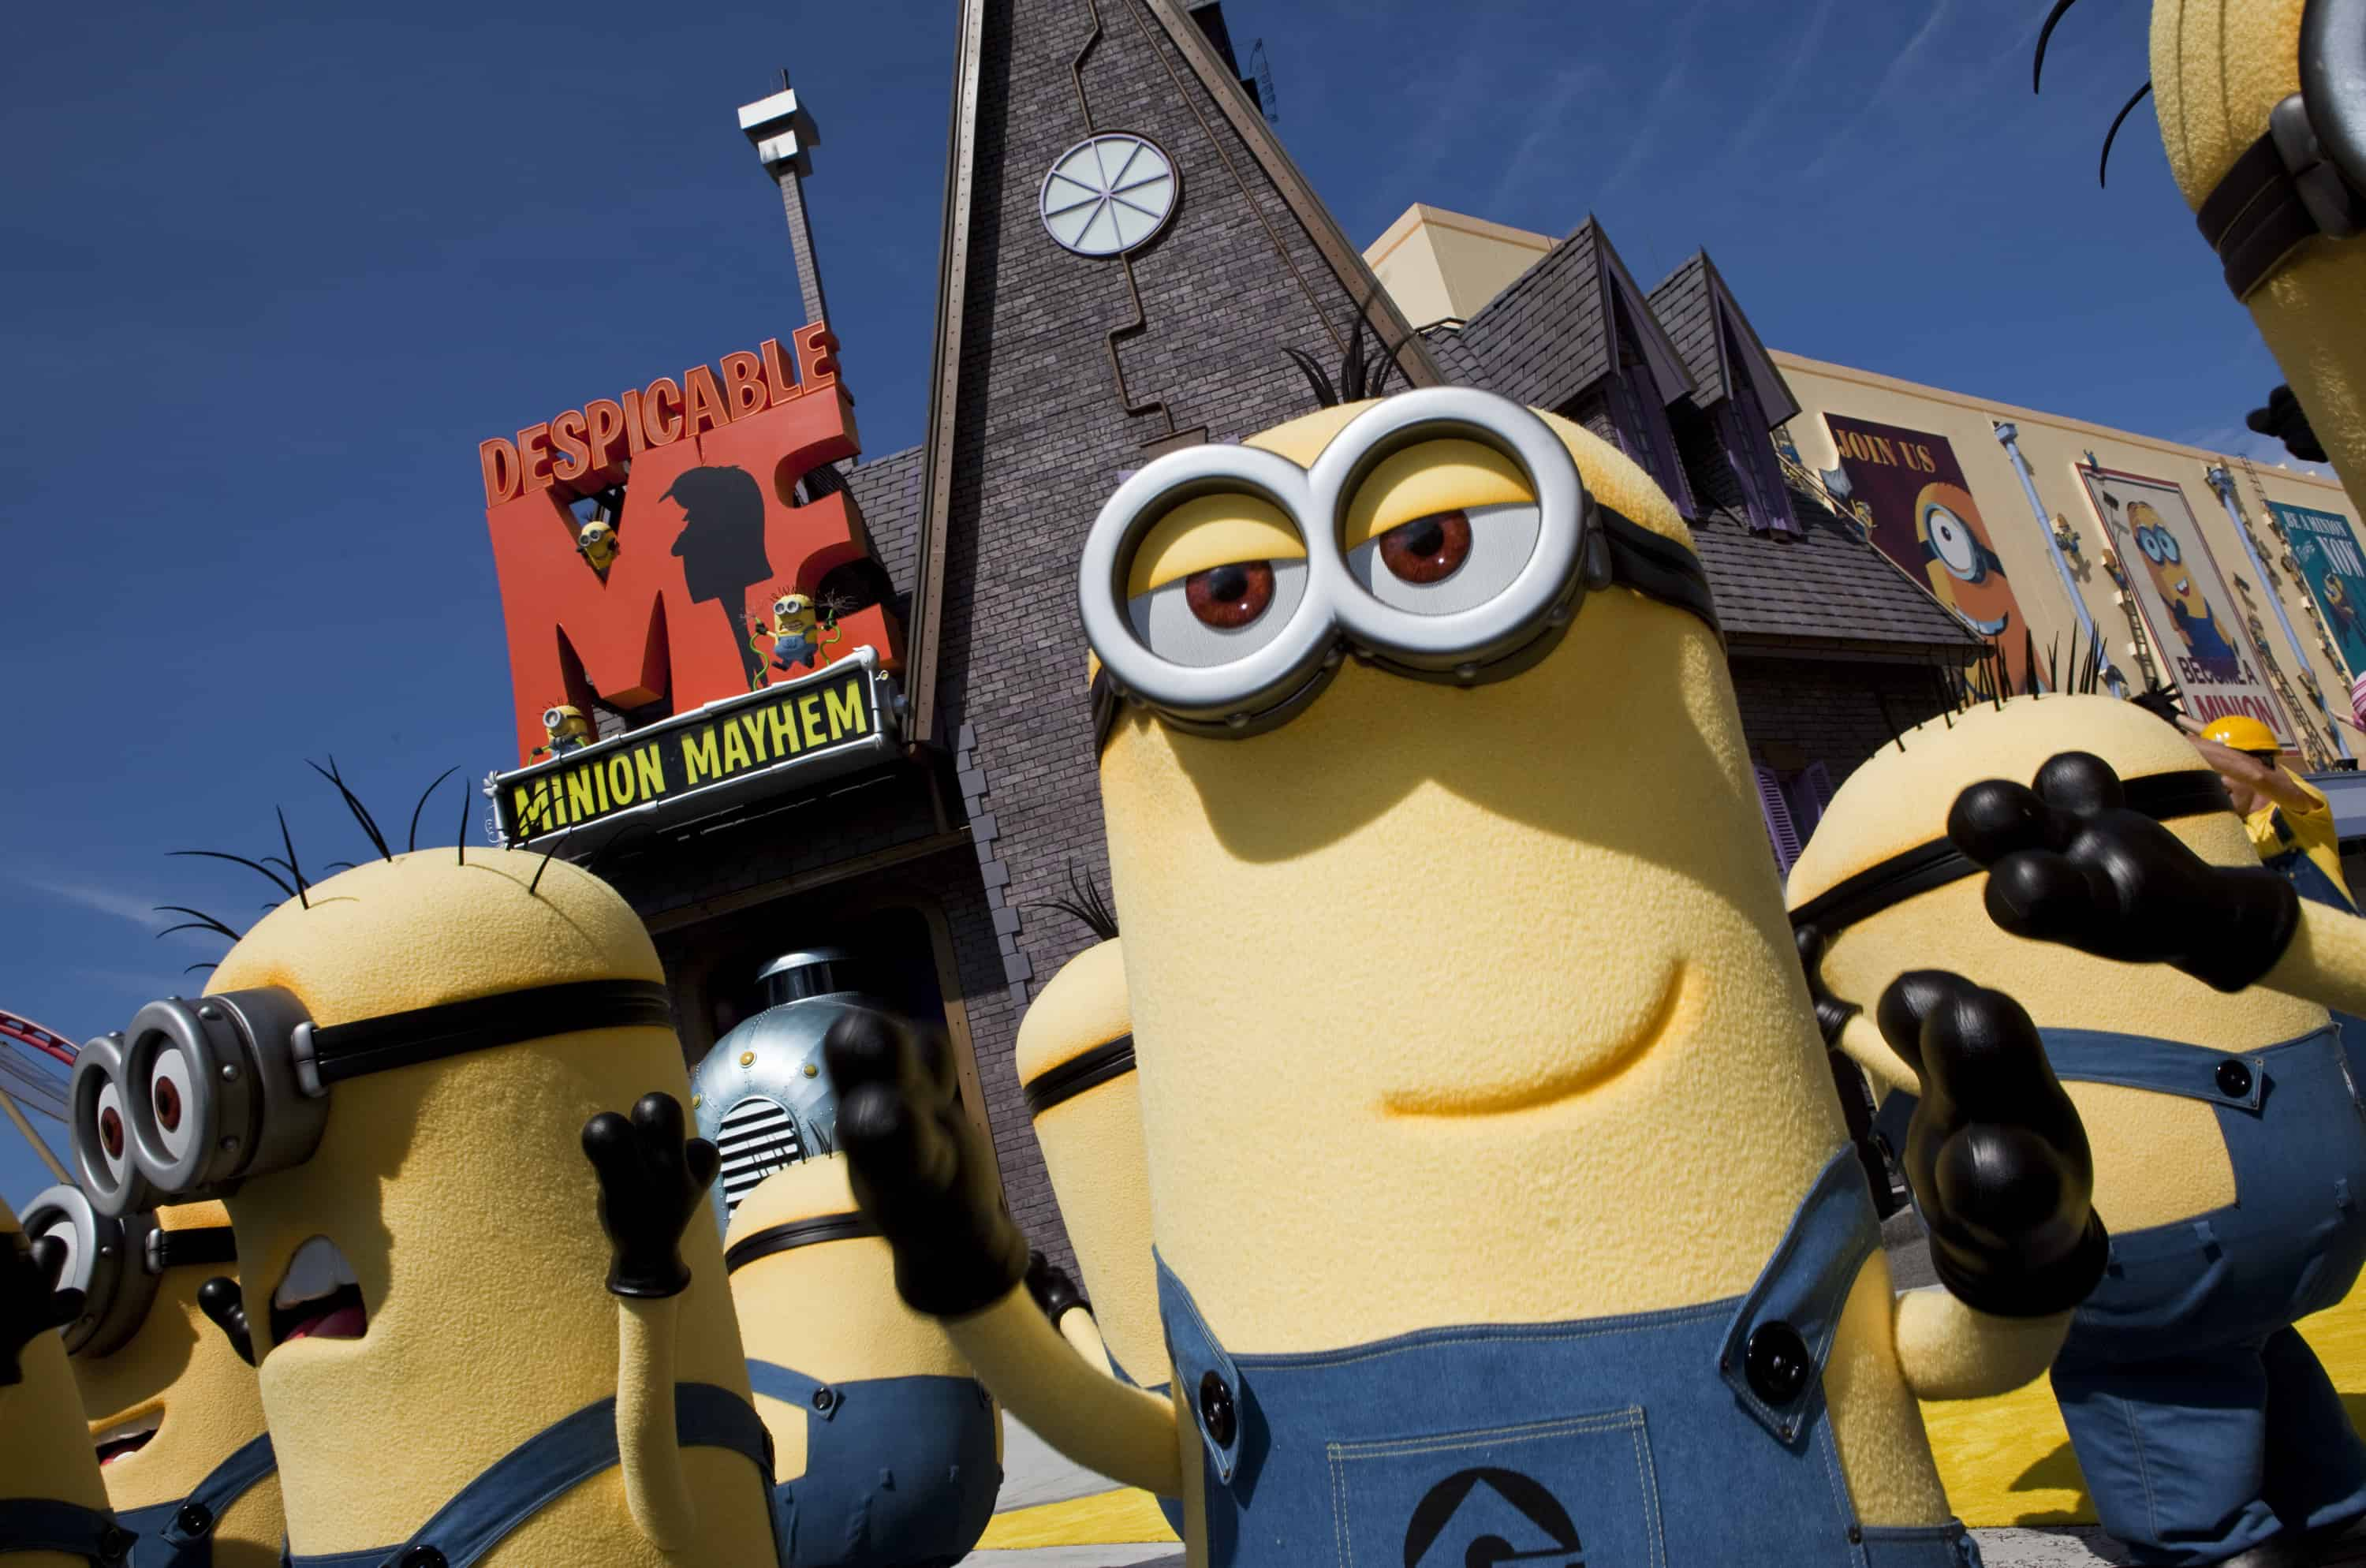 Despicable Me Minion Mayhem - Universal Studious Resort